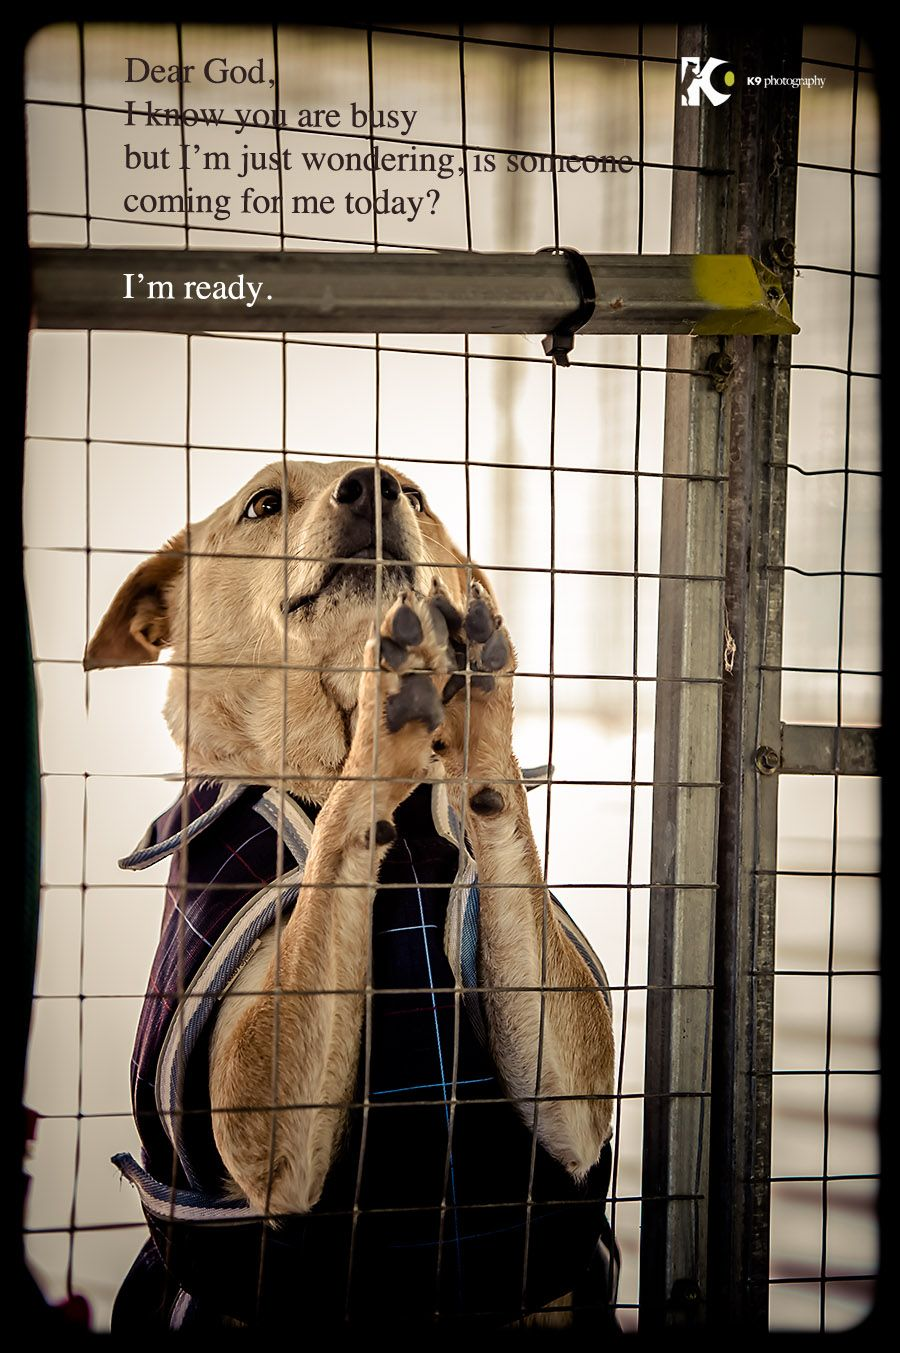 Shelter Dog S Prayer Dear God I Know You Are Busy But I M Just